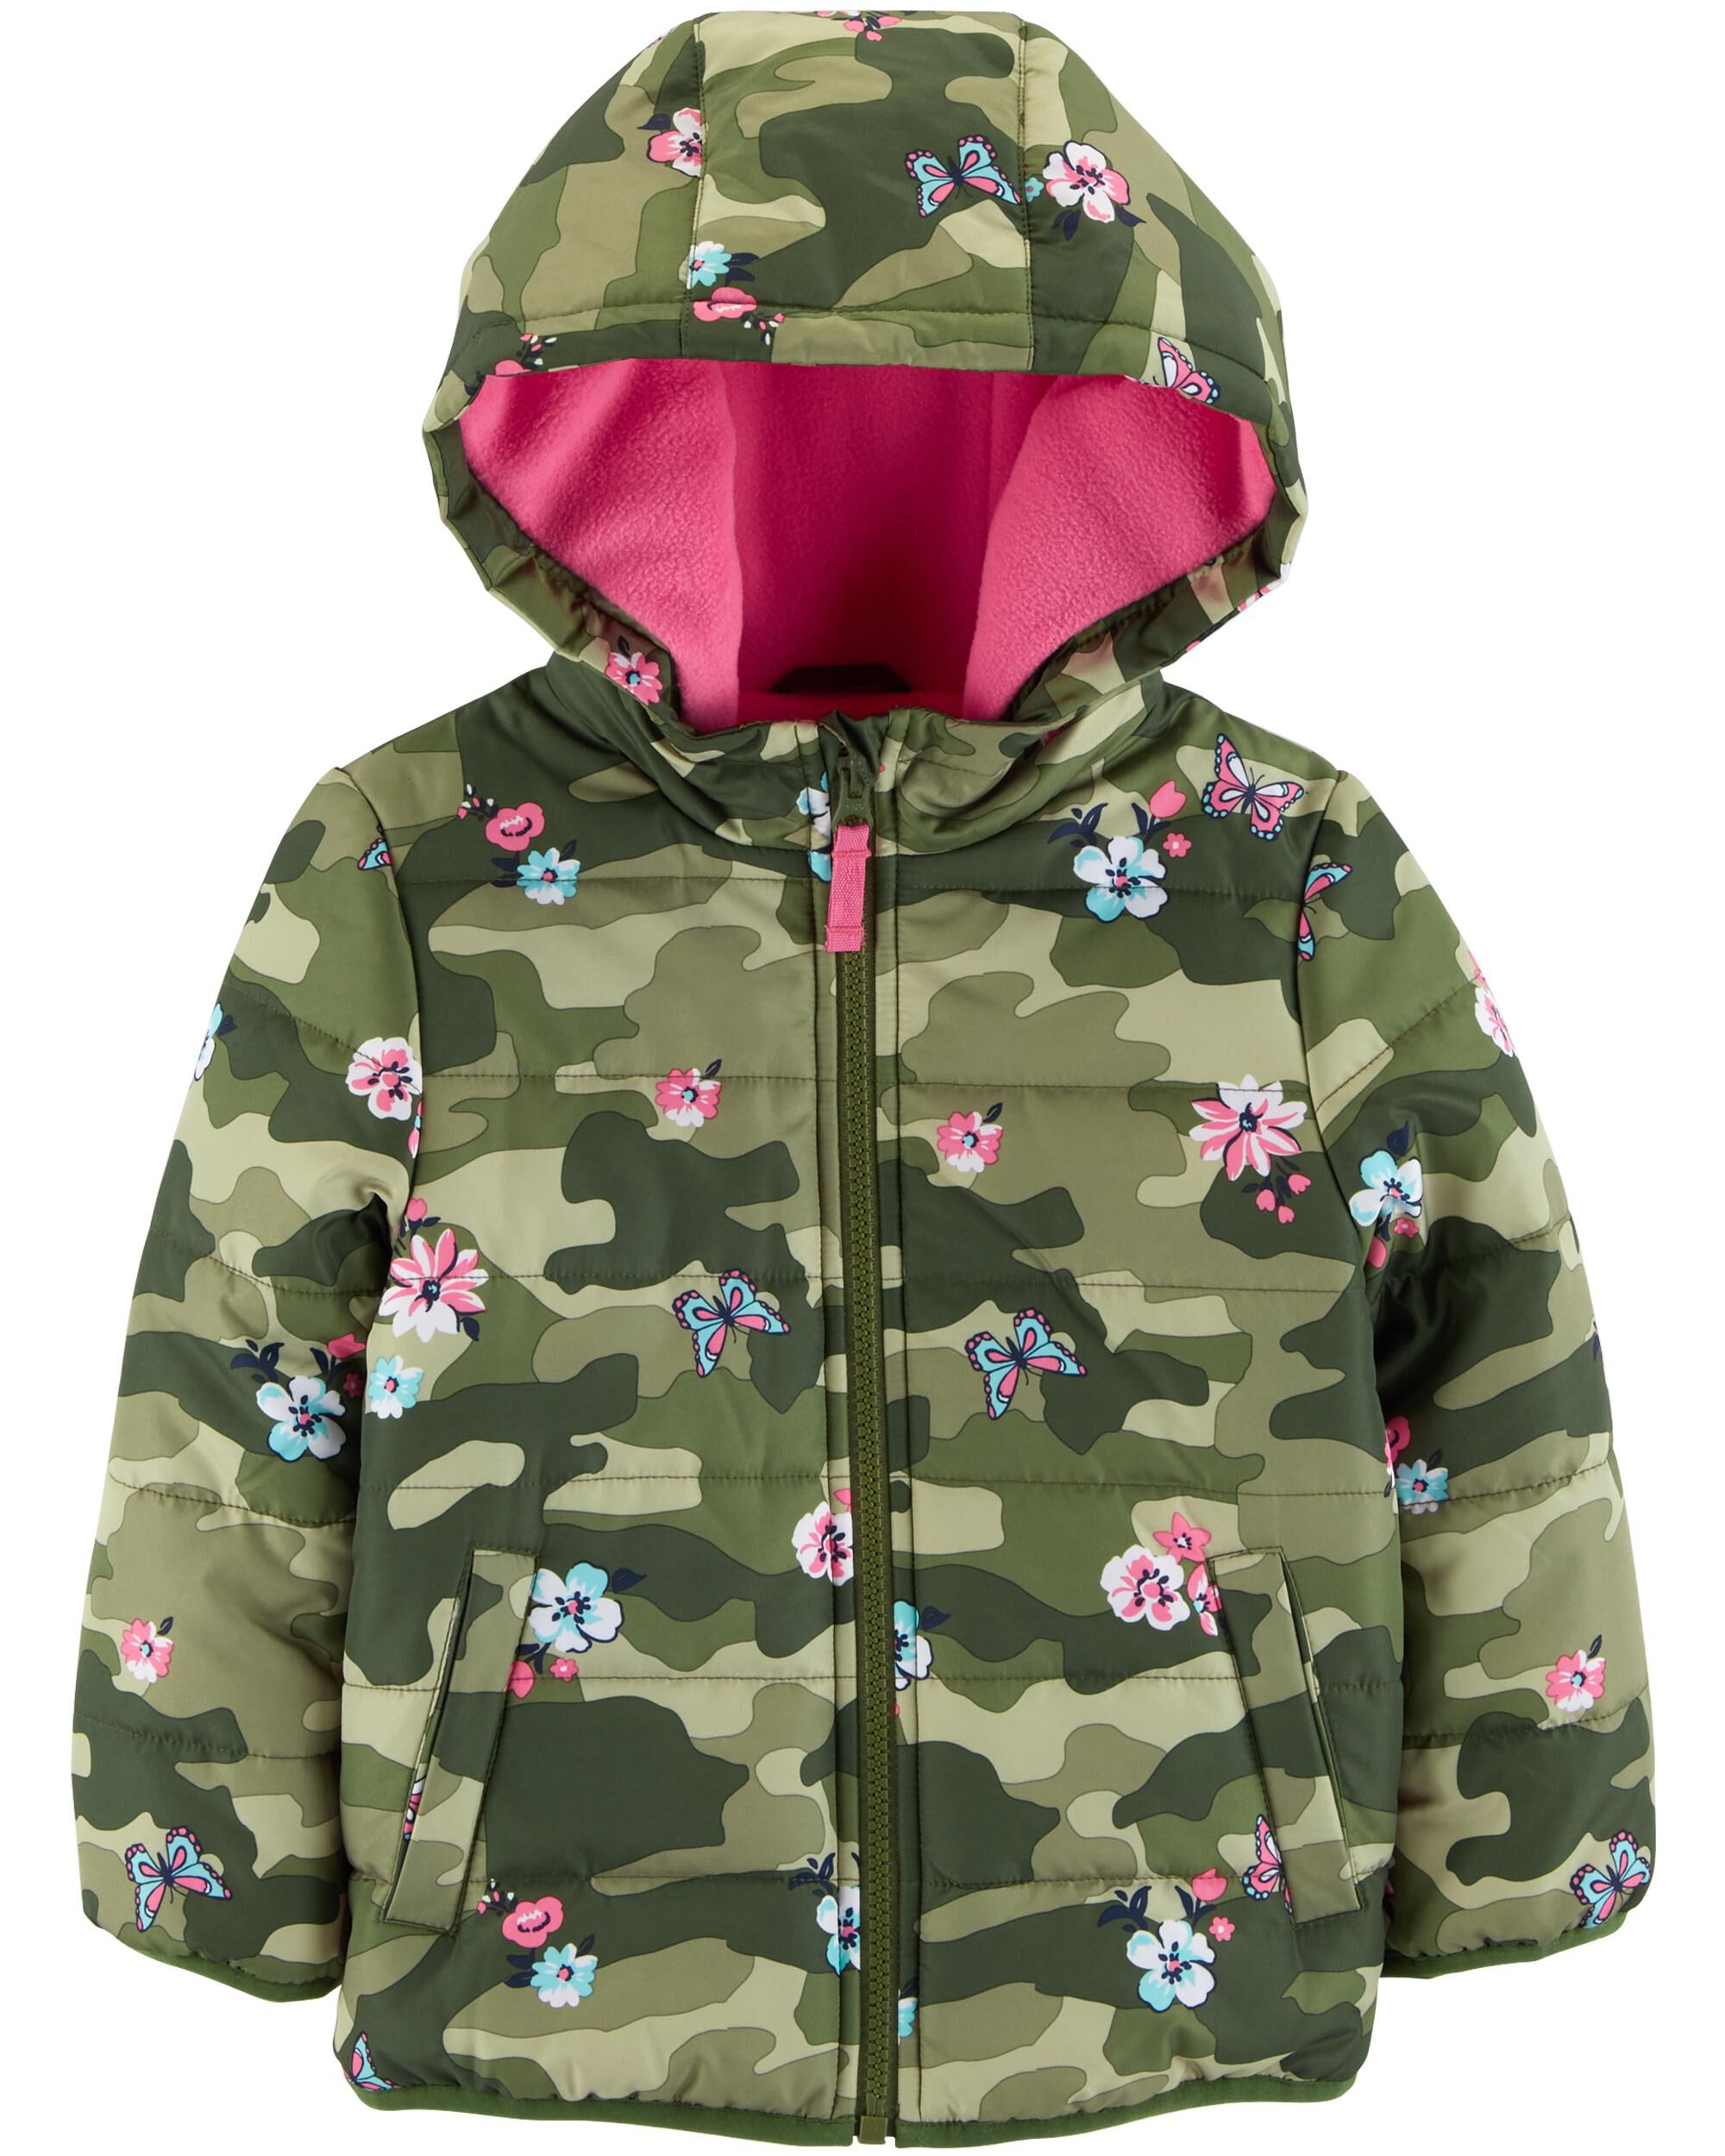 953055f52 Floral Camo Puffer Jacket | Carters.com